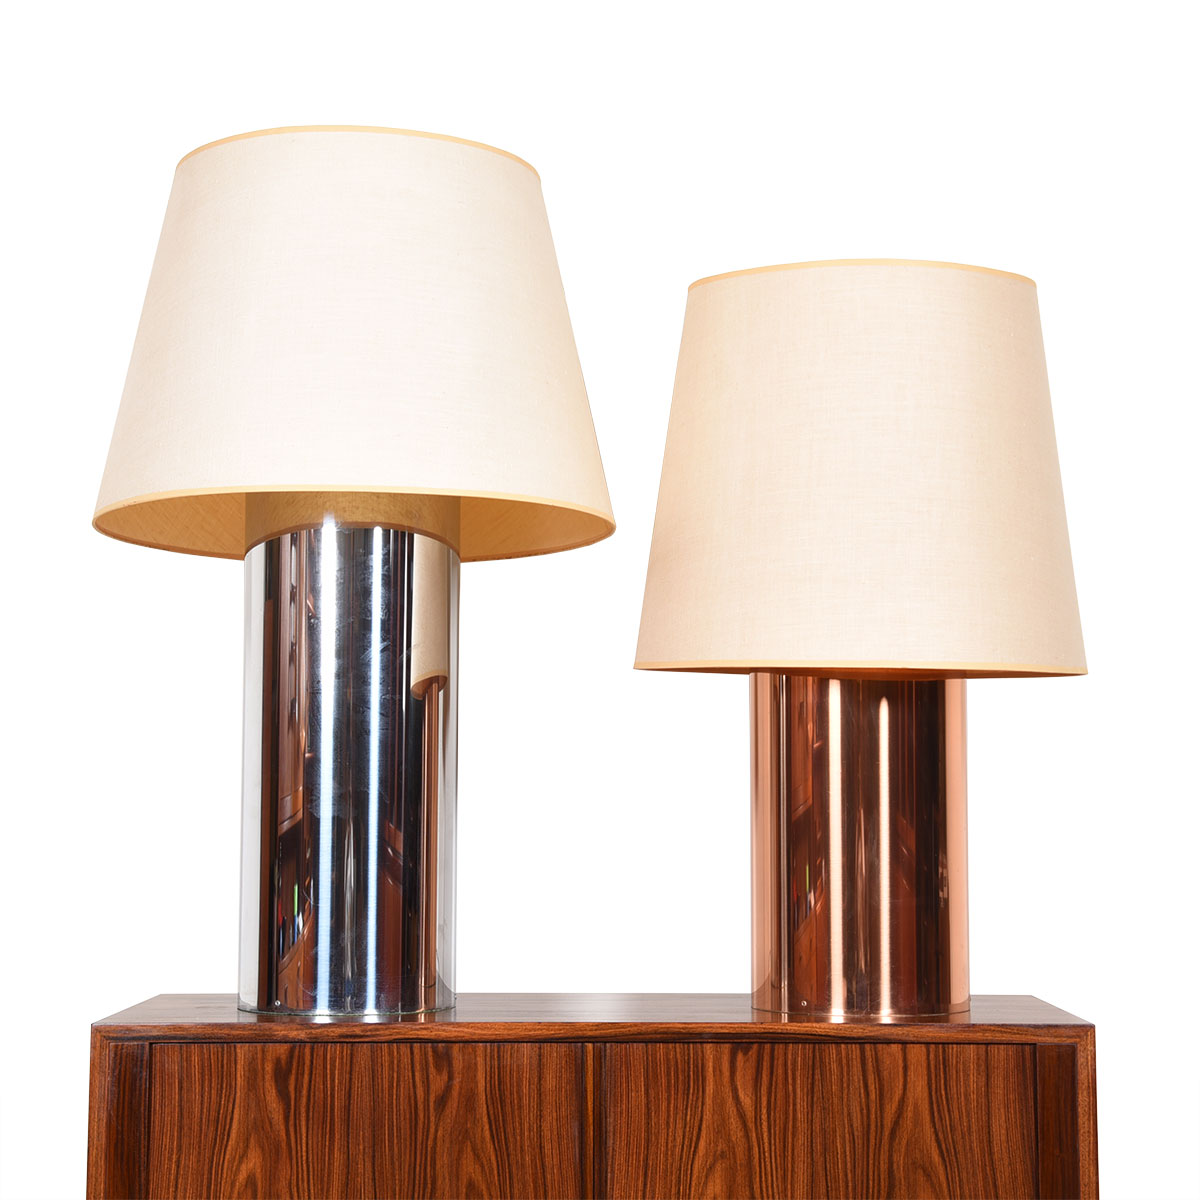 Pair of Mid Century Tinted Chrome Double-Socketed Table Lamps